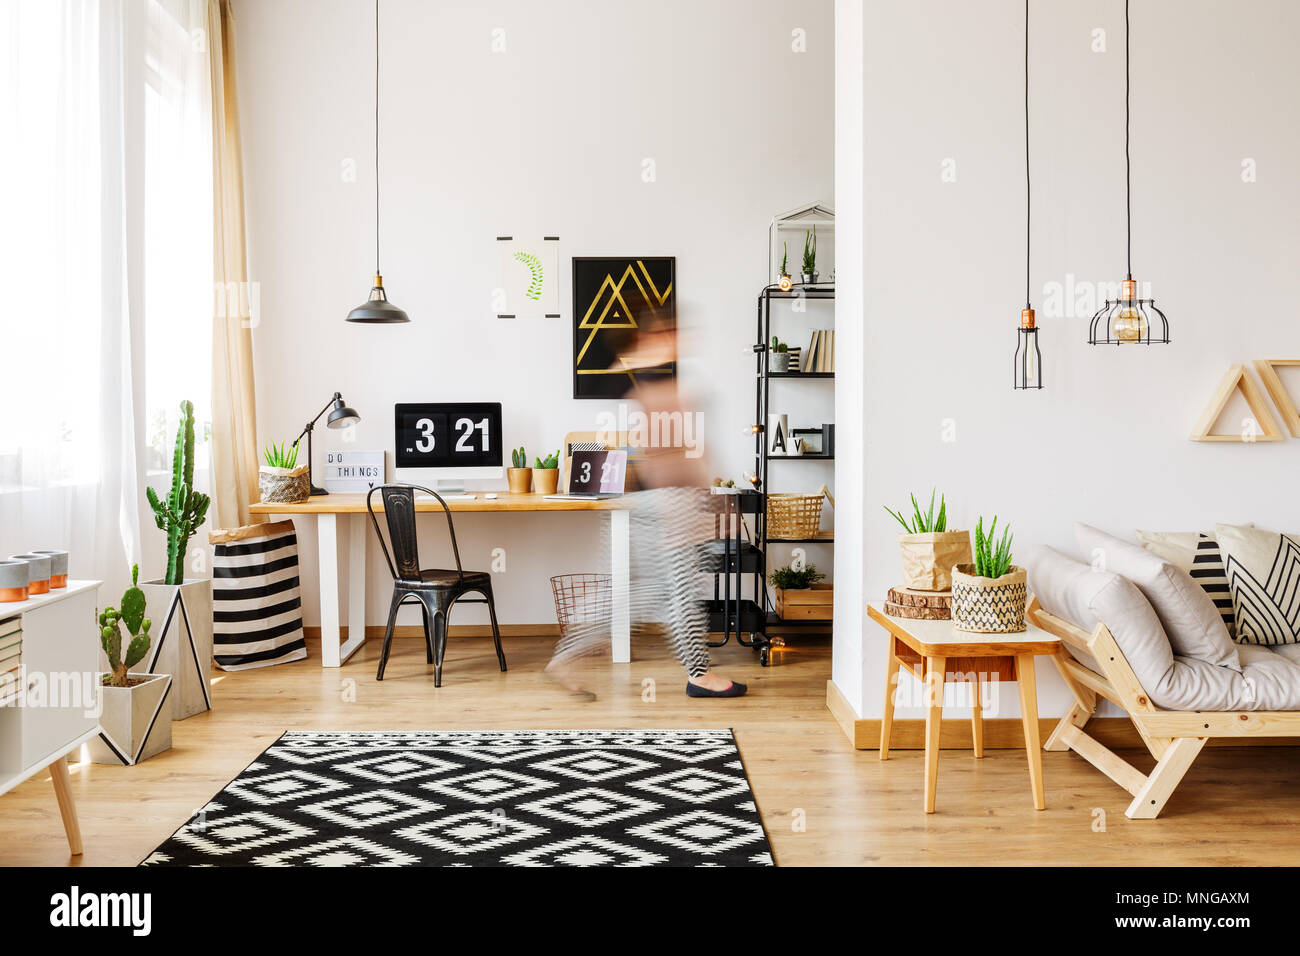 Home furniture of a freelancer with natural eco accessories, wooden desk, potted plants, patterned rug, computer and triangle shelves in spacious livi - Stock Image